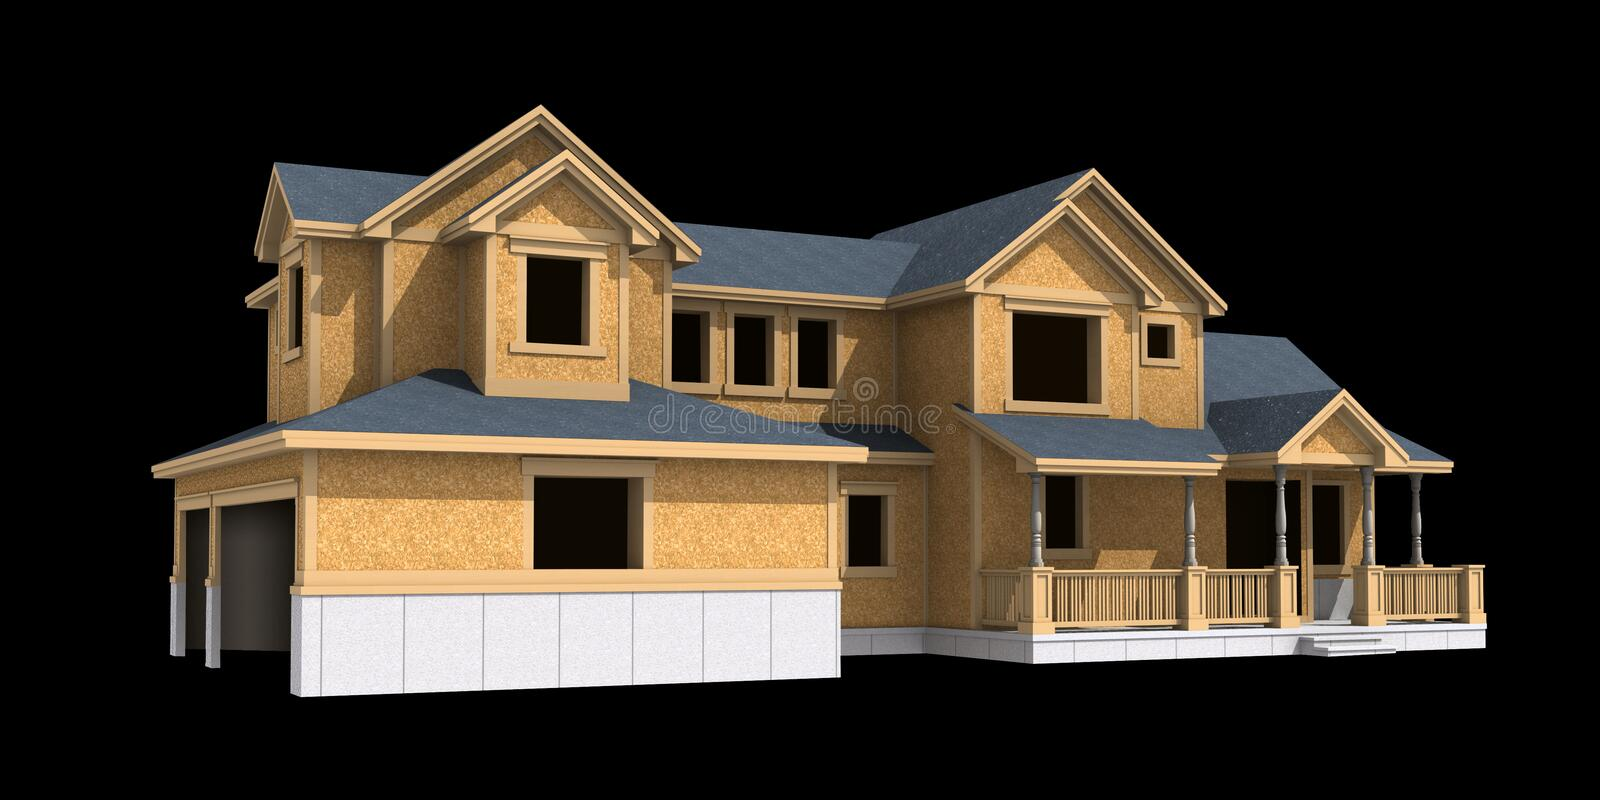 3d model of unfinished ranch royalty free illustration